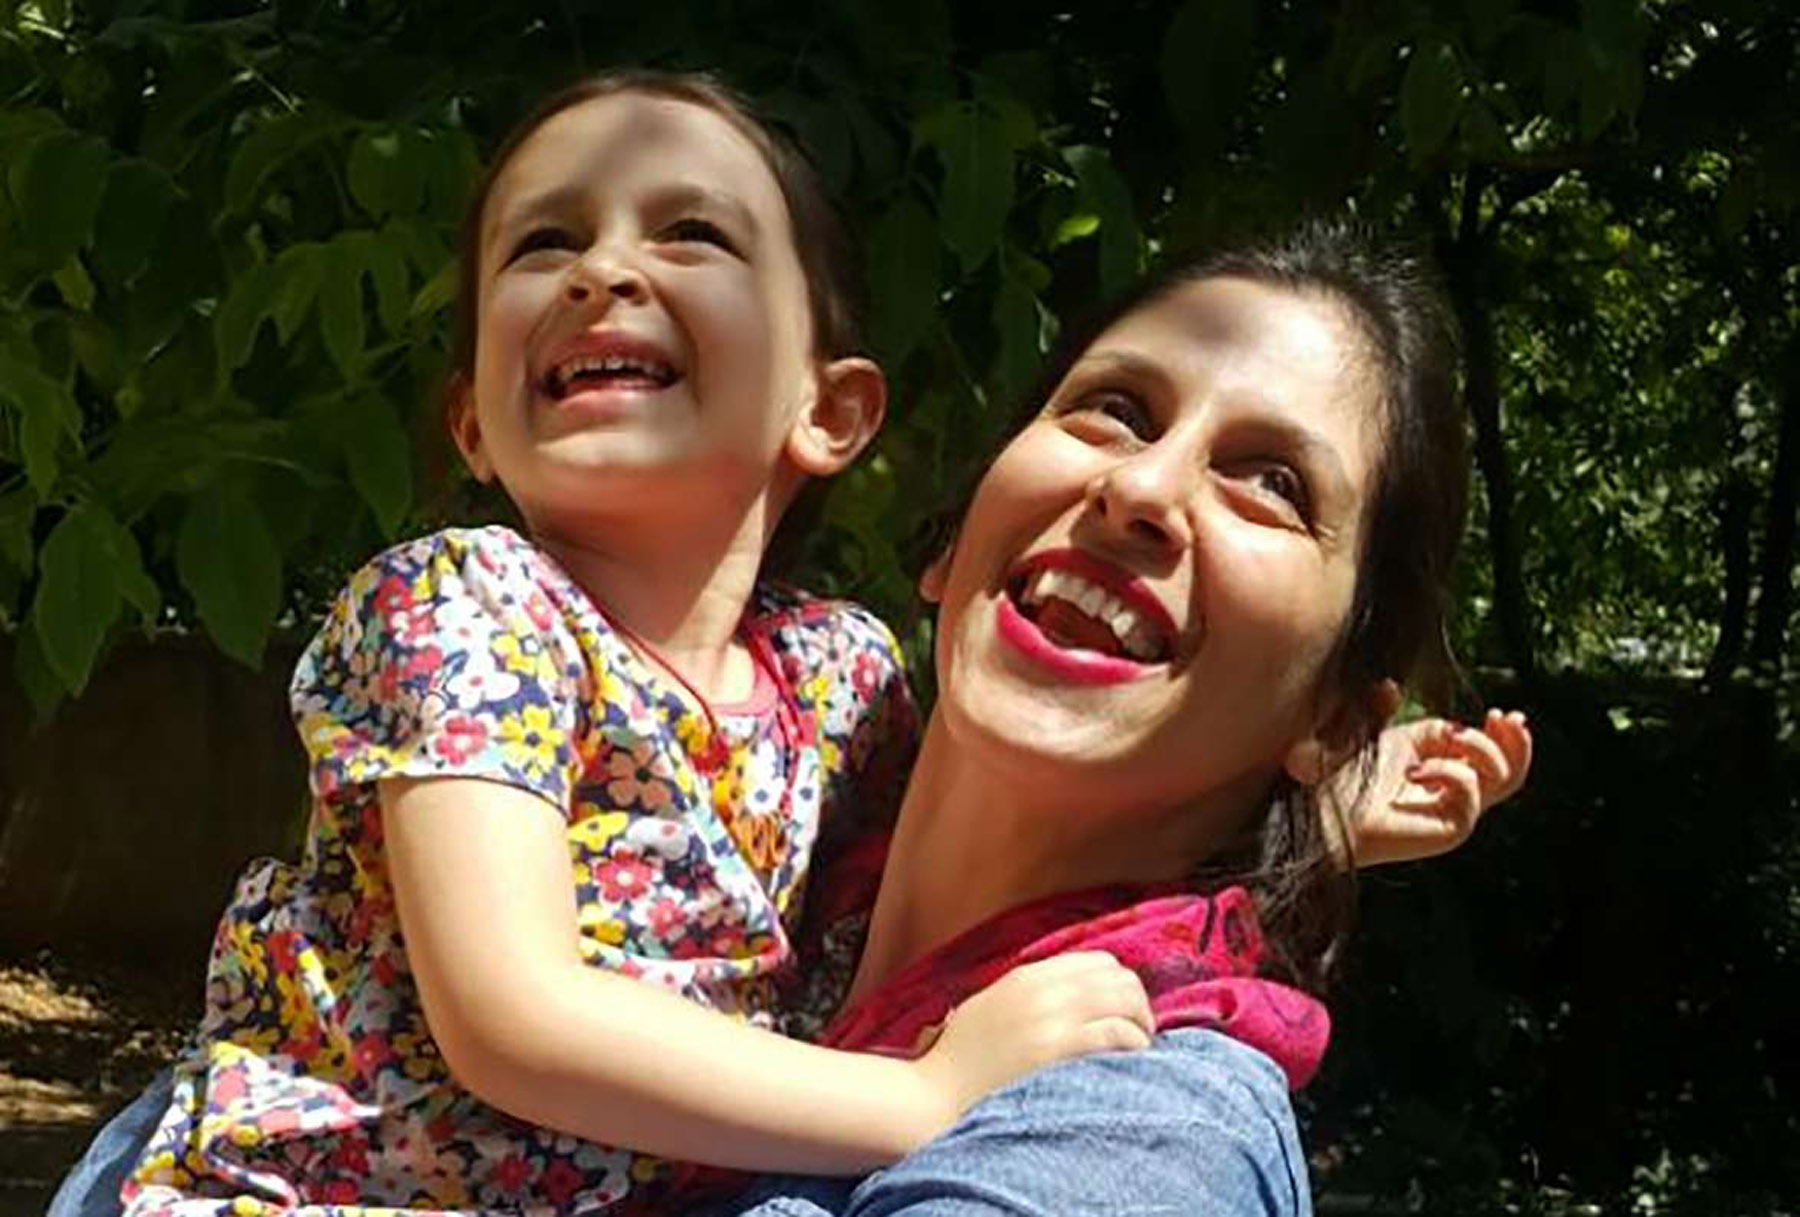 Nazanin Zaghari-Ratcliffe embraces her daughter Gabriella in Damavand, Iran,  following her release from prison for three days, last August. (AFP)